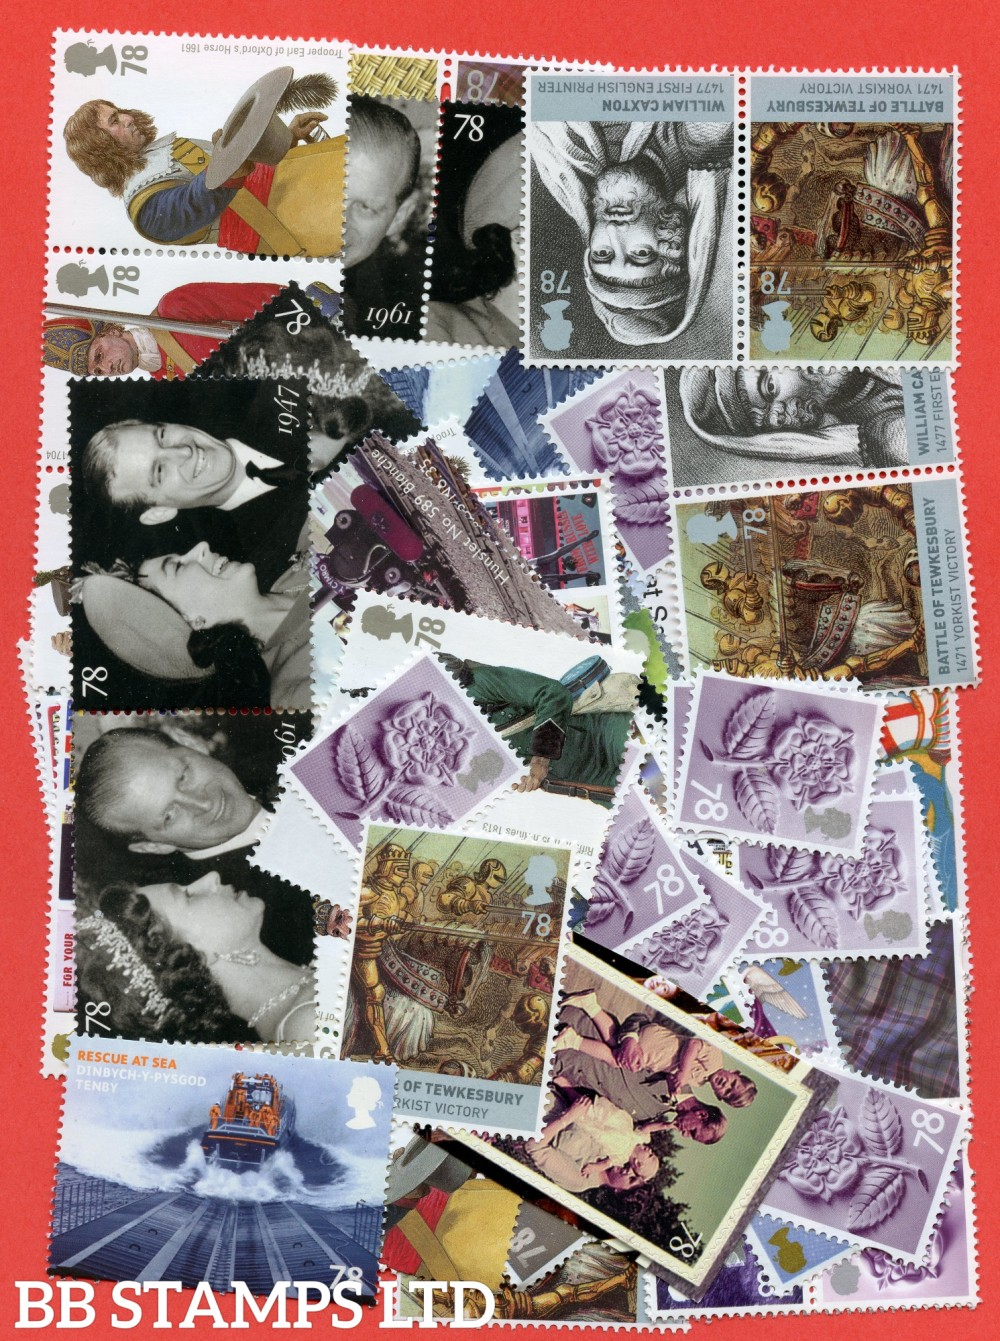 100 x 78p stamps. All of our postage lots are genuine mint stamps with gum and have never been used as postage.